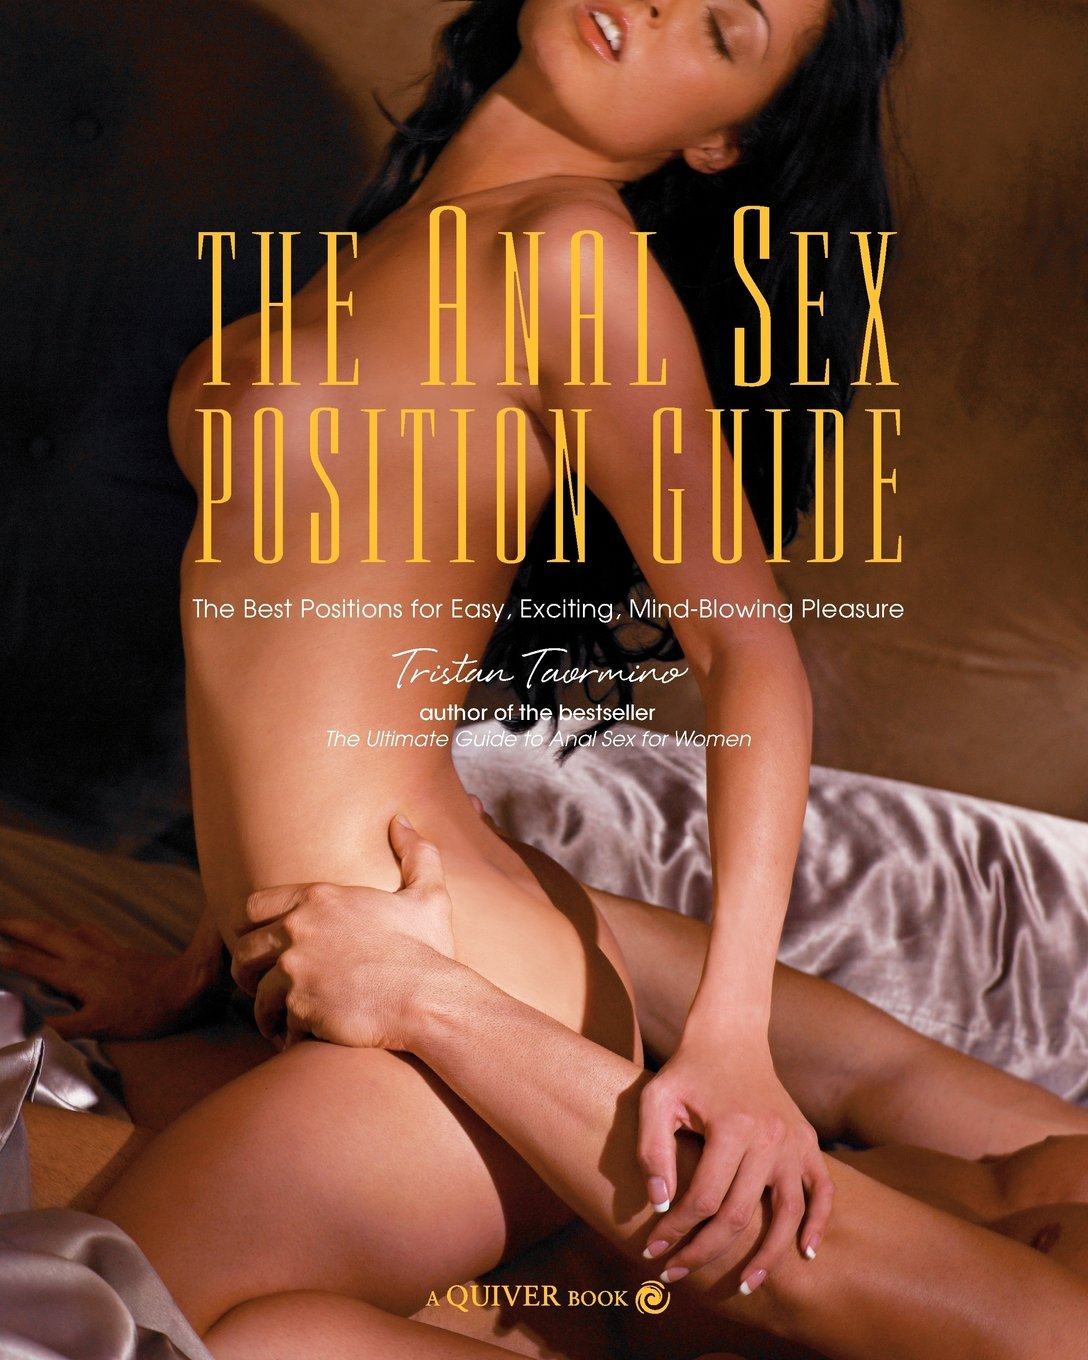 Best posistions for anal sex illustrated